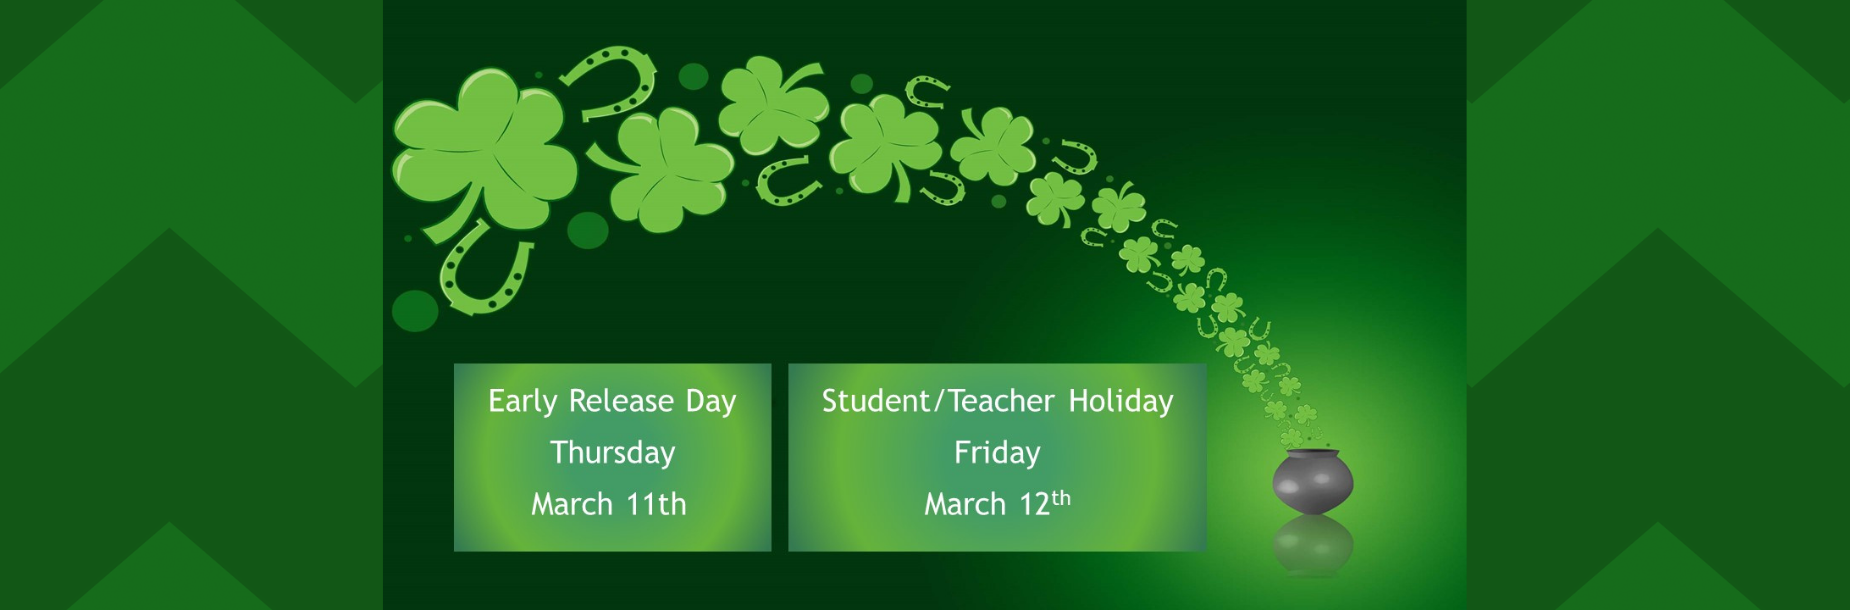 Early Release March 11 and student holiday March 12